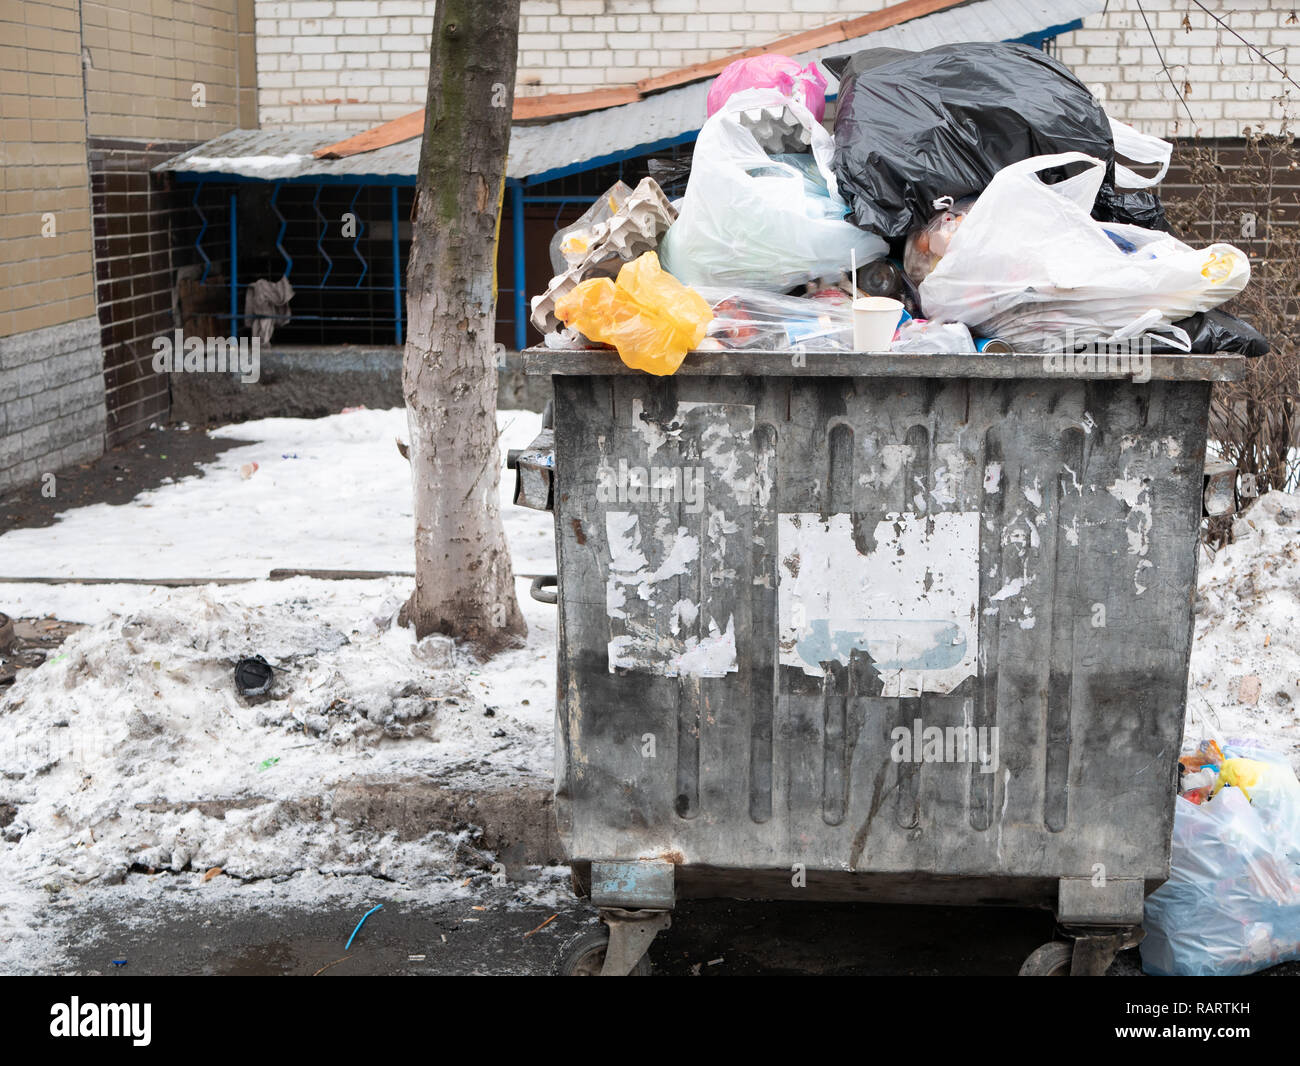 big waste city container full of garbage. pile of trash. bad utilities work concept - Stock Image